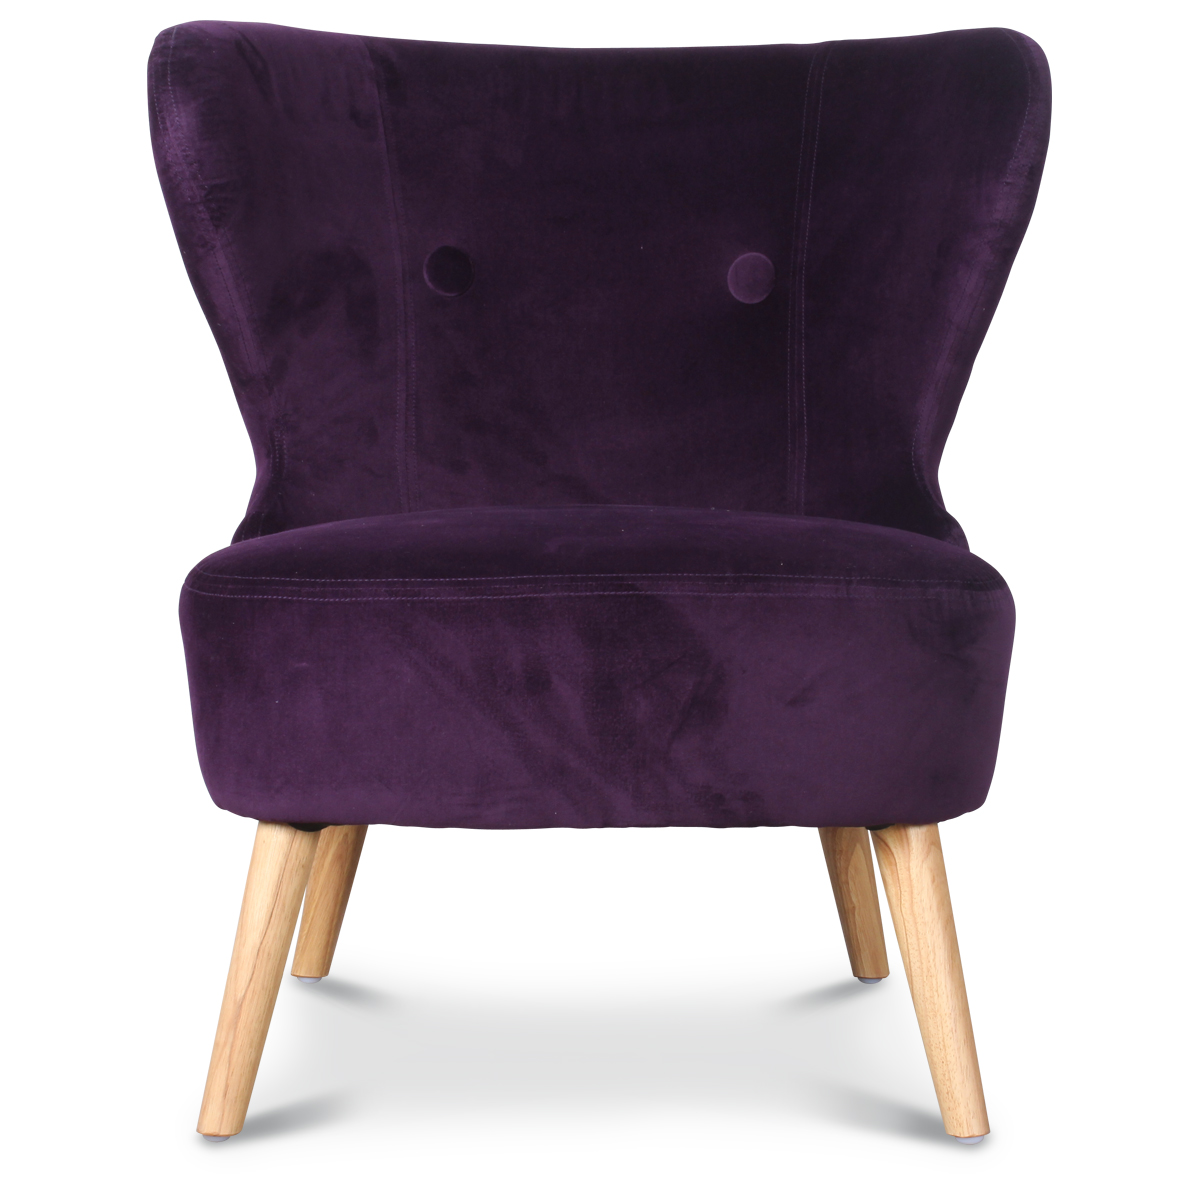 fauteuil crapaud design scandinave aubergine kok n demeure et jardin. Black Bedroom Furniture Sets. Home Design Ideas